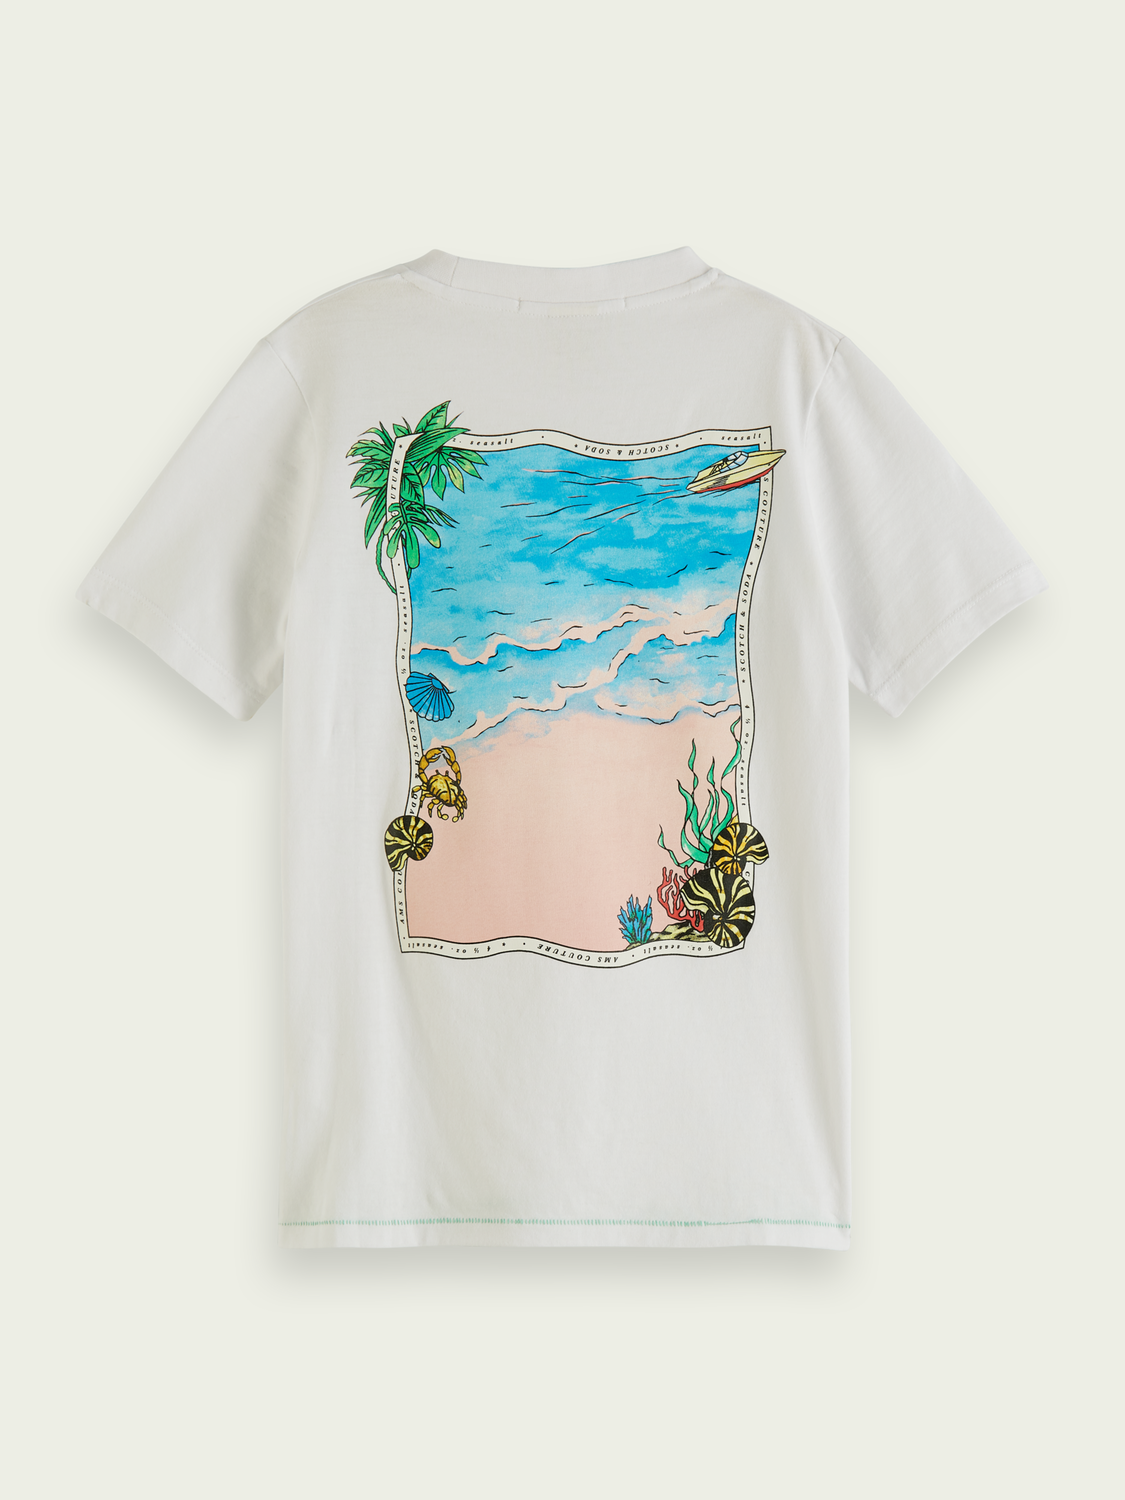 Kinder T-Shirt mit Tropic-Grafik